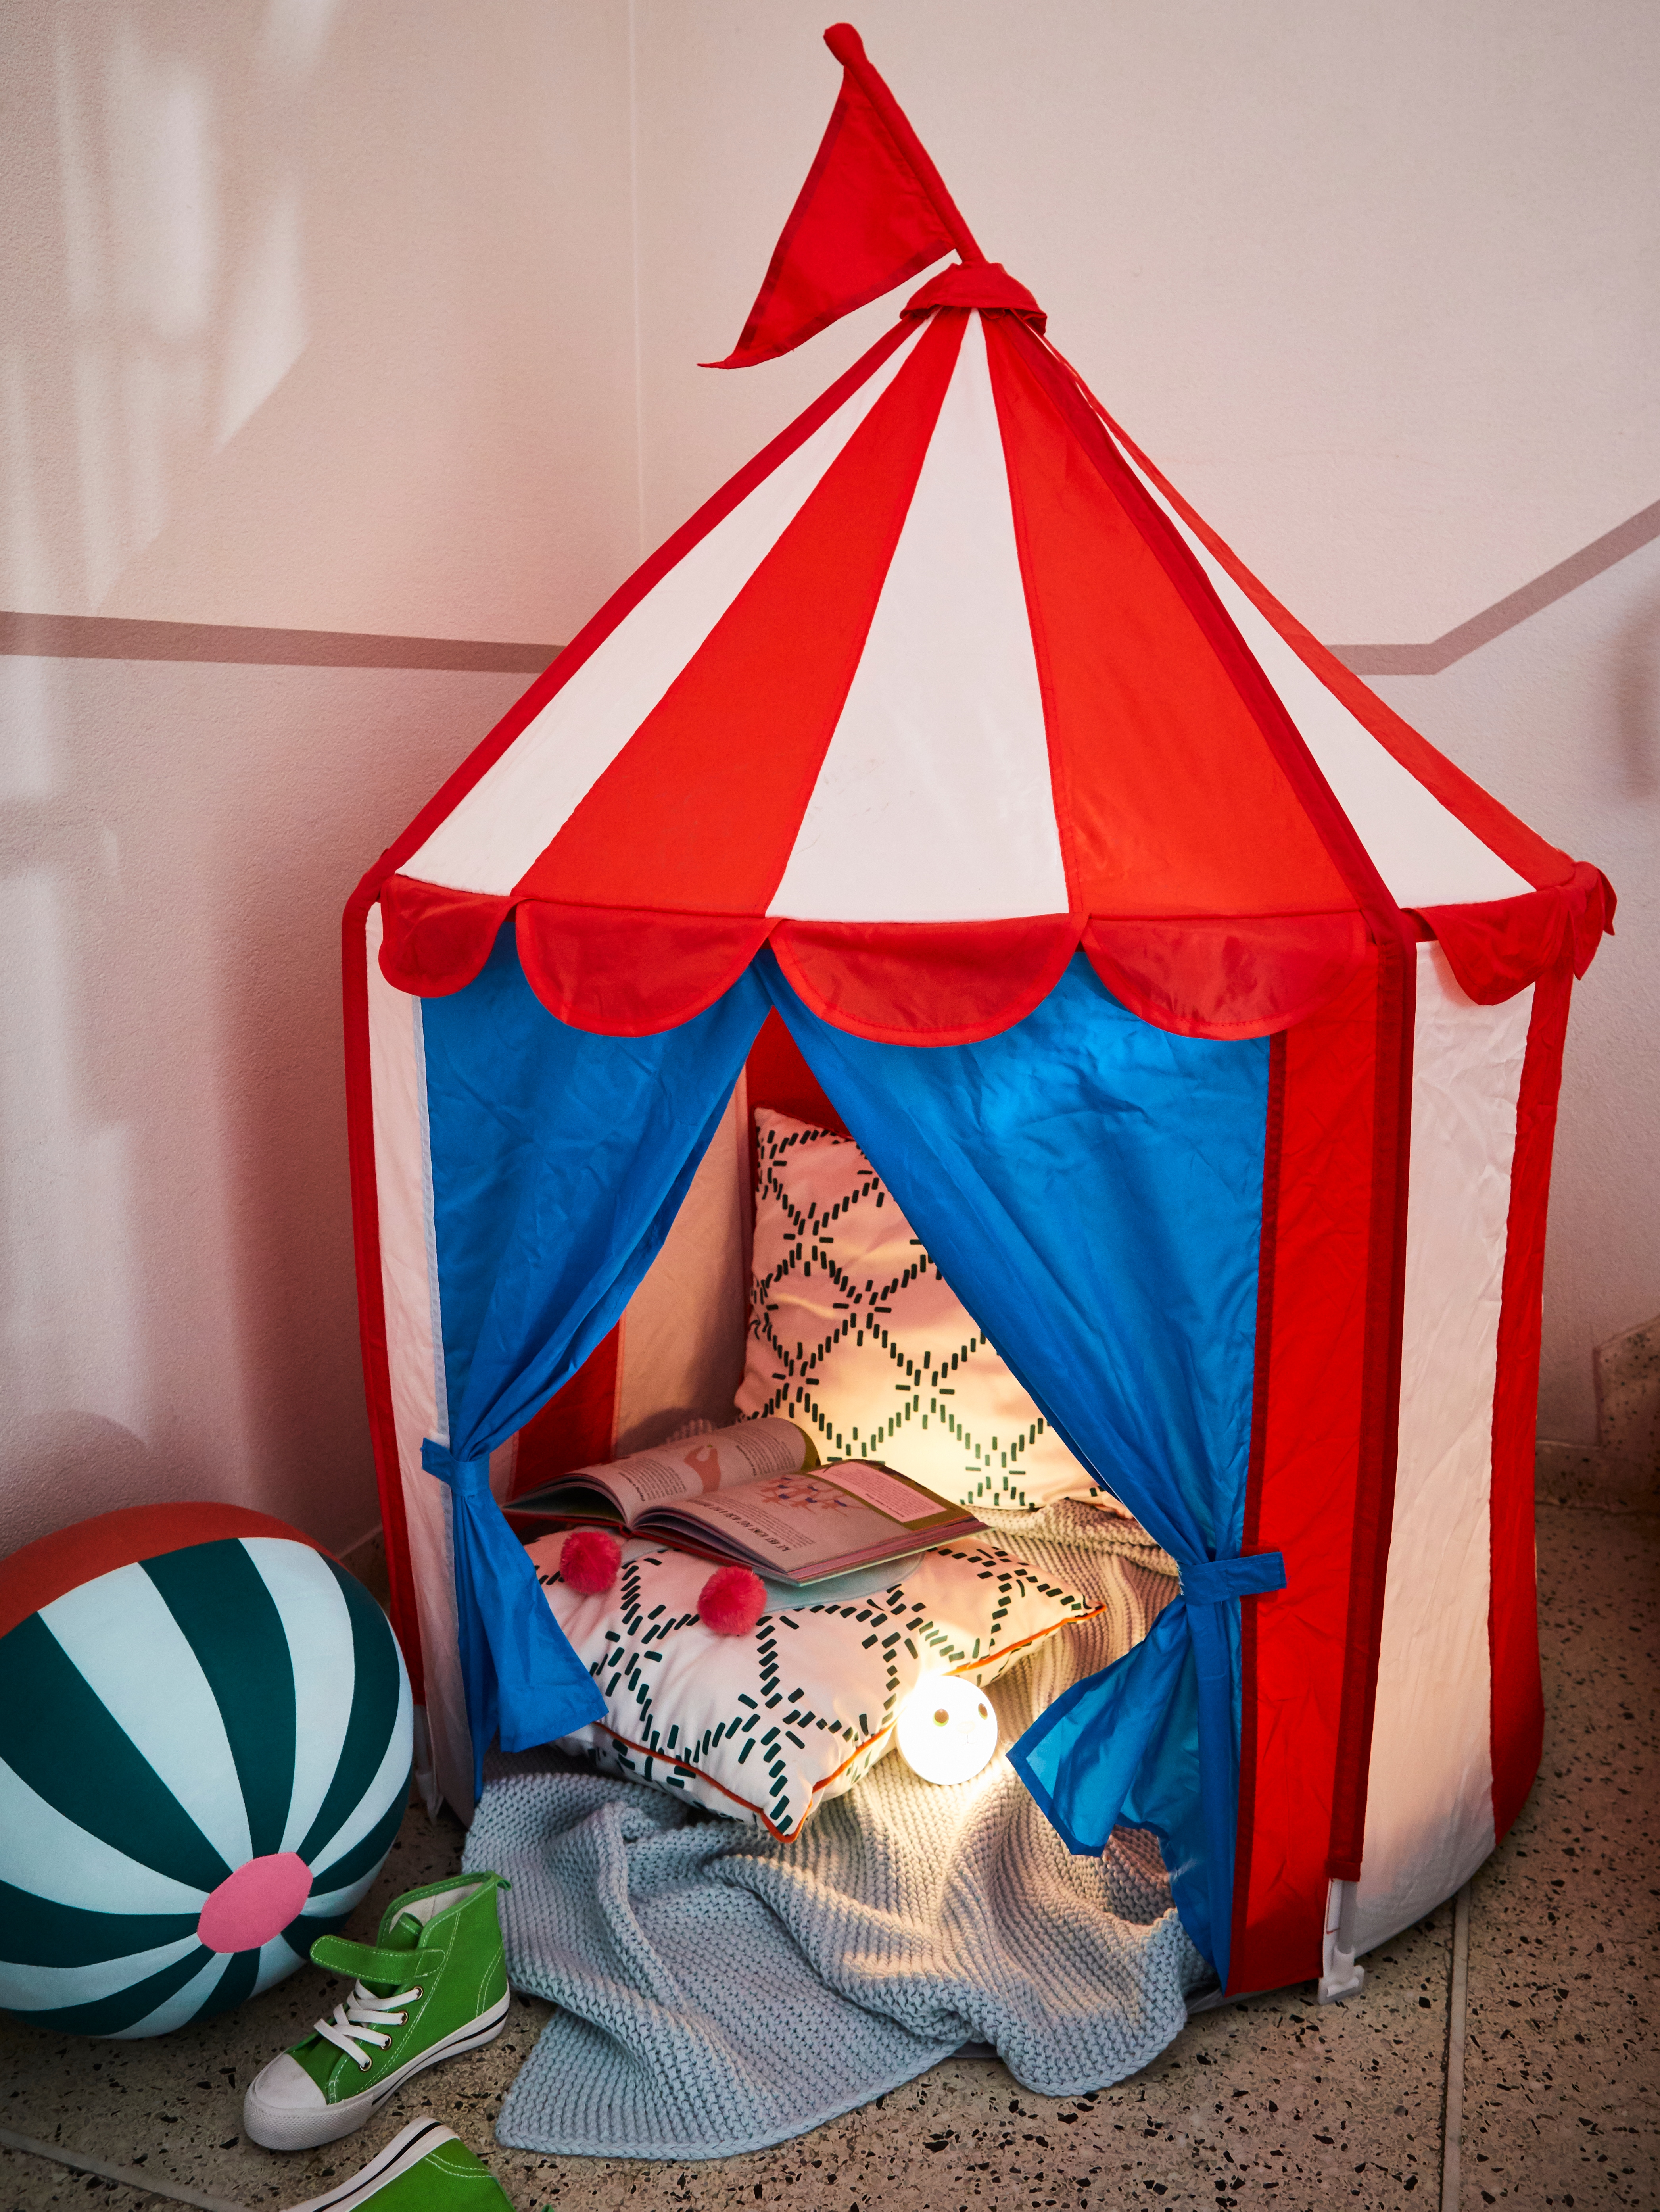 A red and white striped CIRKUSTÄLT child tent with blue open doors, filled with two cushions and an open book.